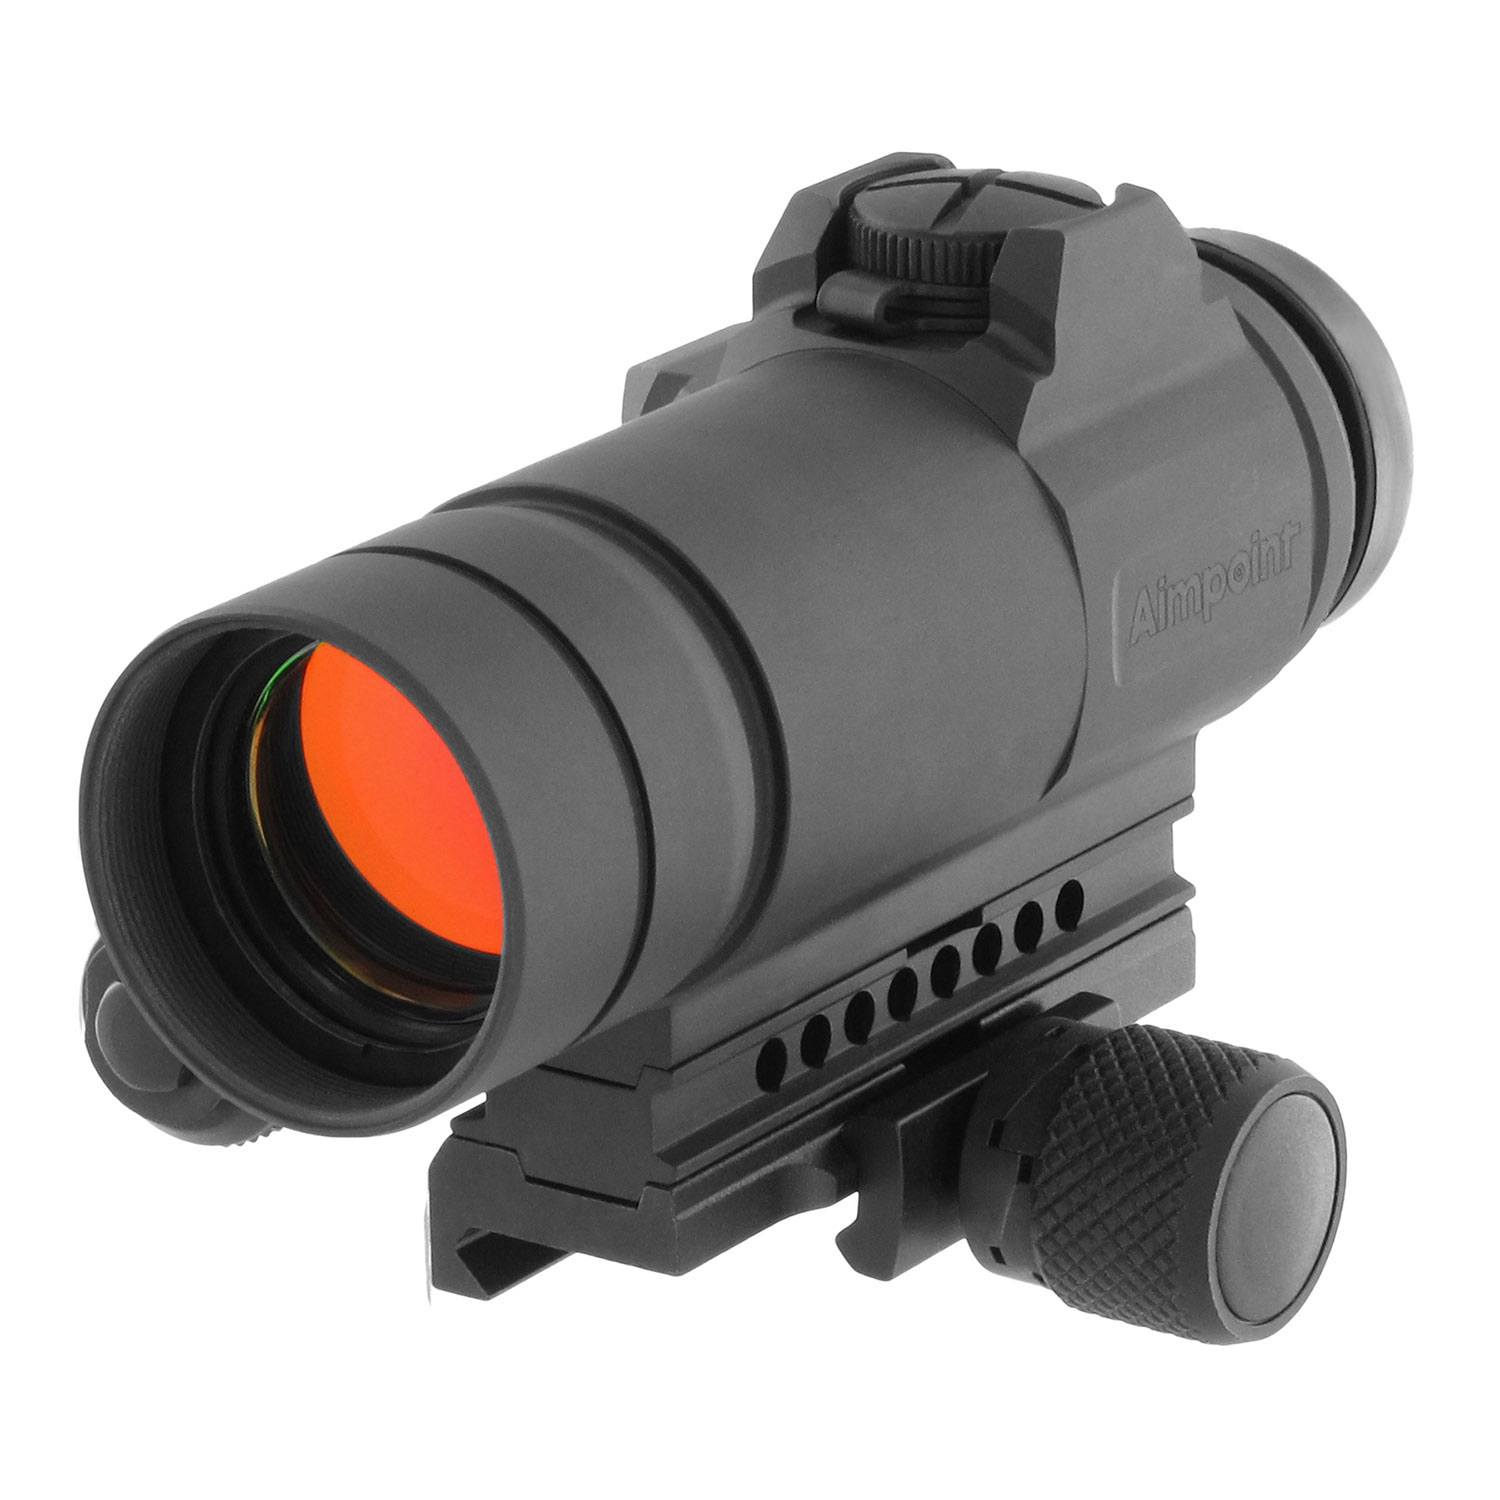 Aimpoint M4s Mil-Spec 2 MOA Red Dot